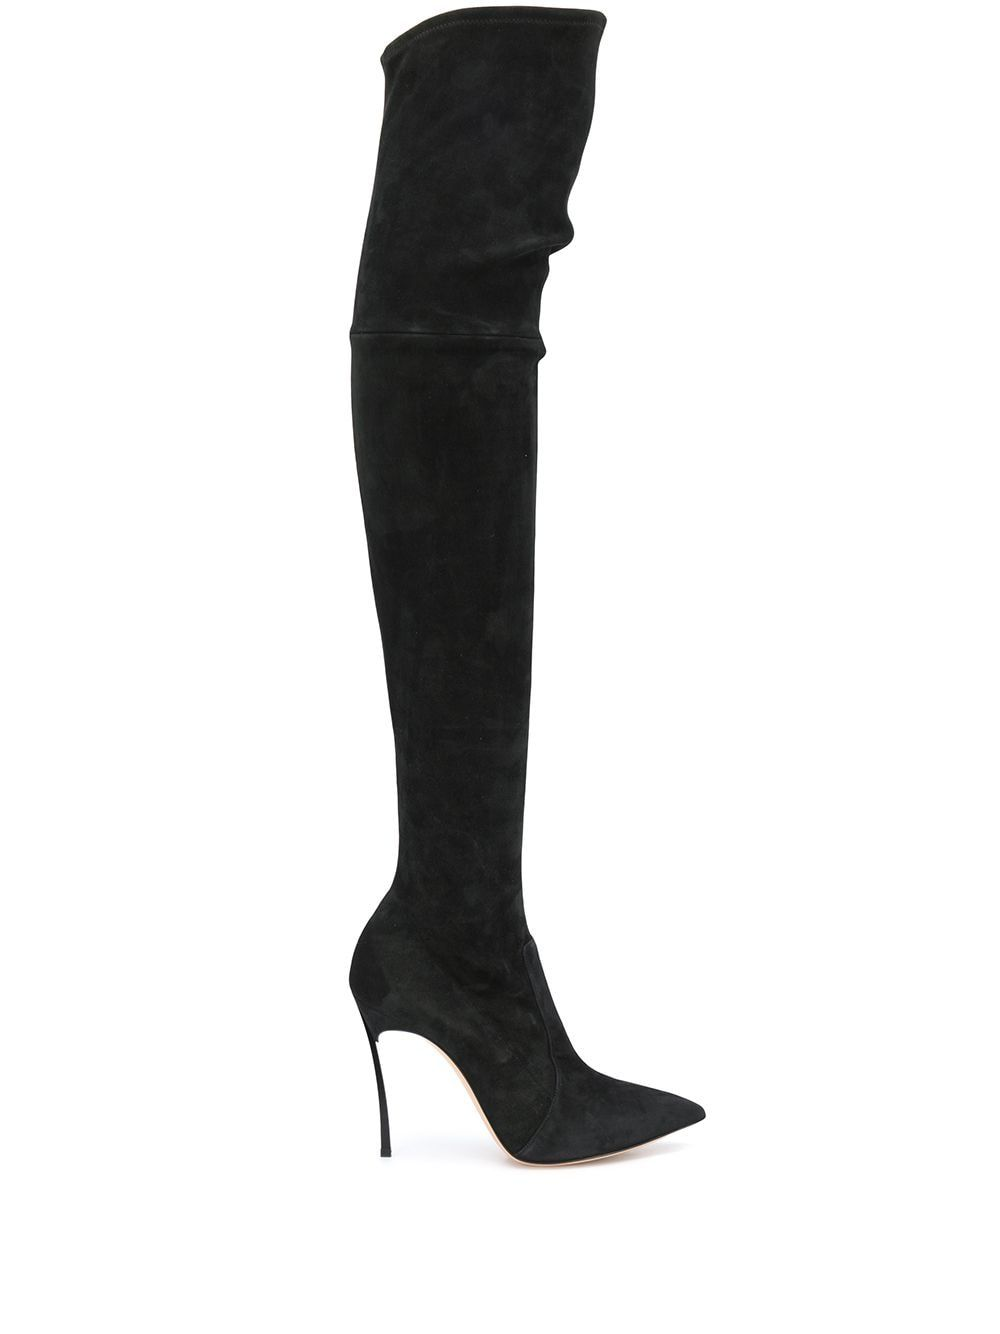 Suede leather heel boots